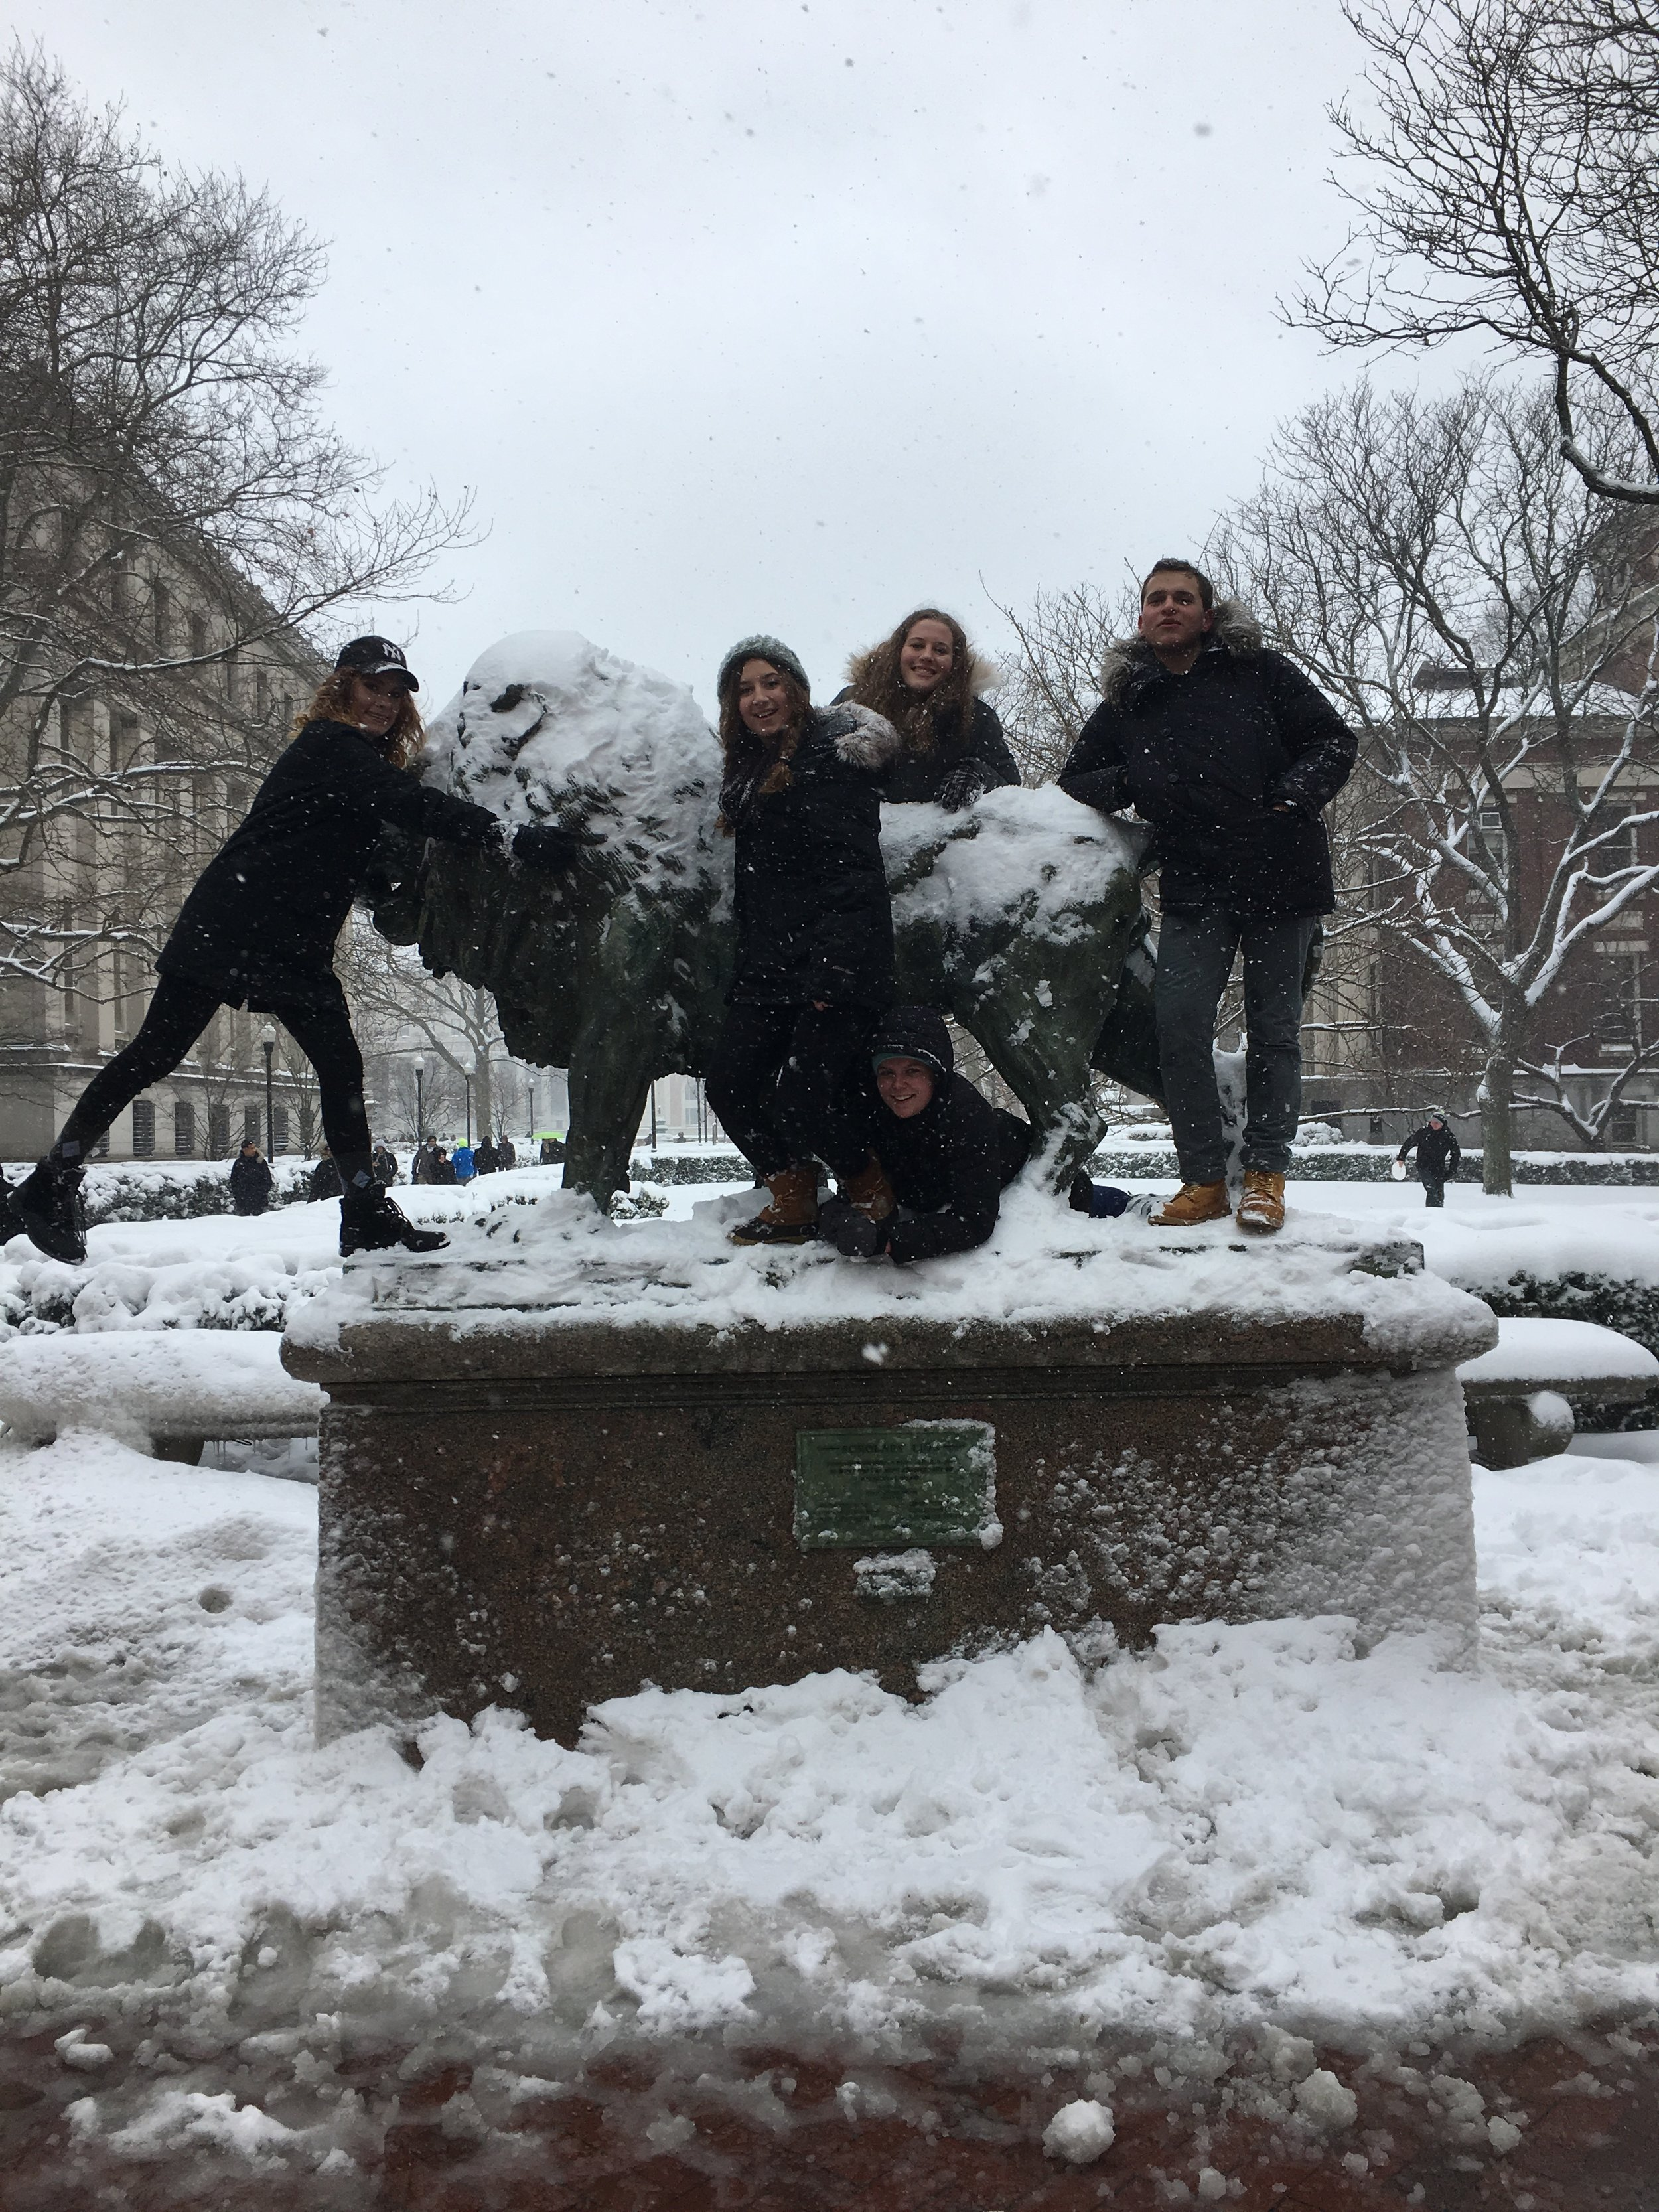 My friends and I posing with one of the Columbia lions on the infamous snow day! (And don't ask me how hard it was to climb onto that lion. I still may have some bruises from the experience.)